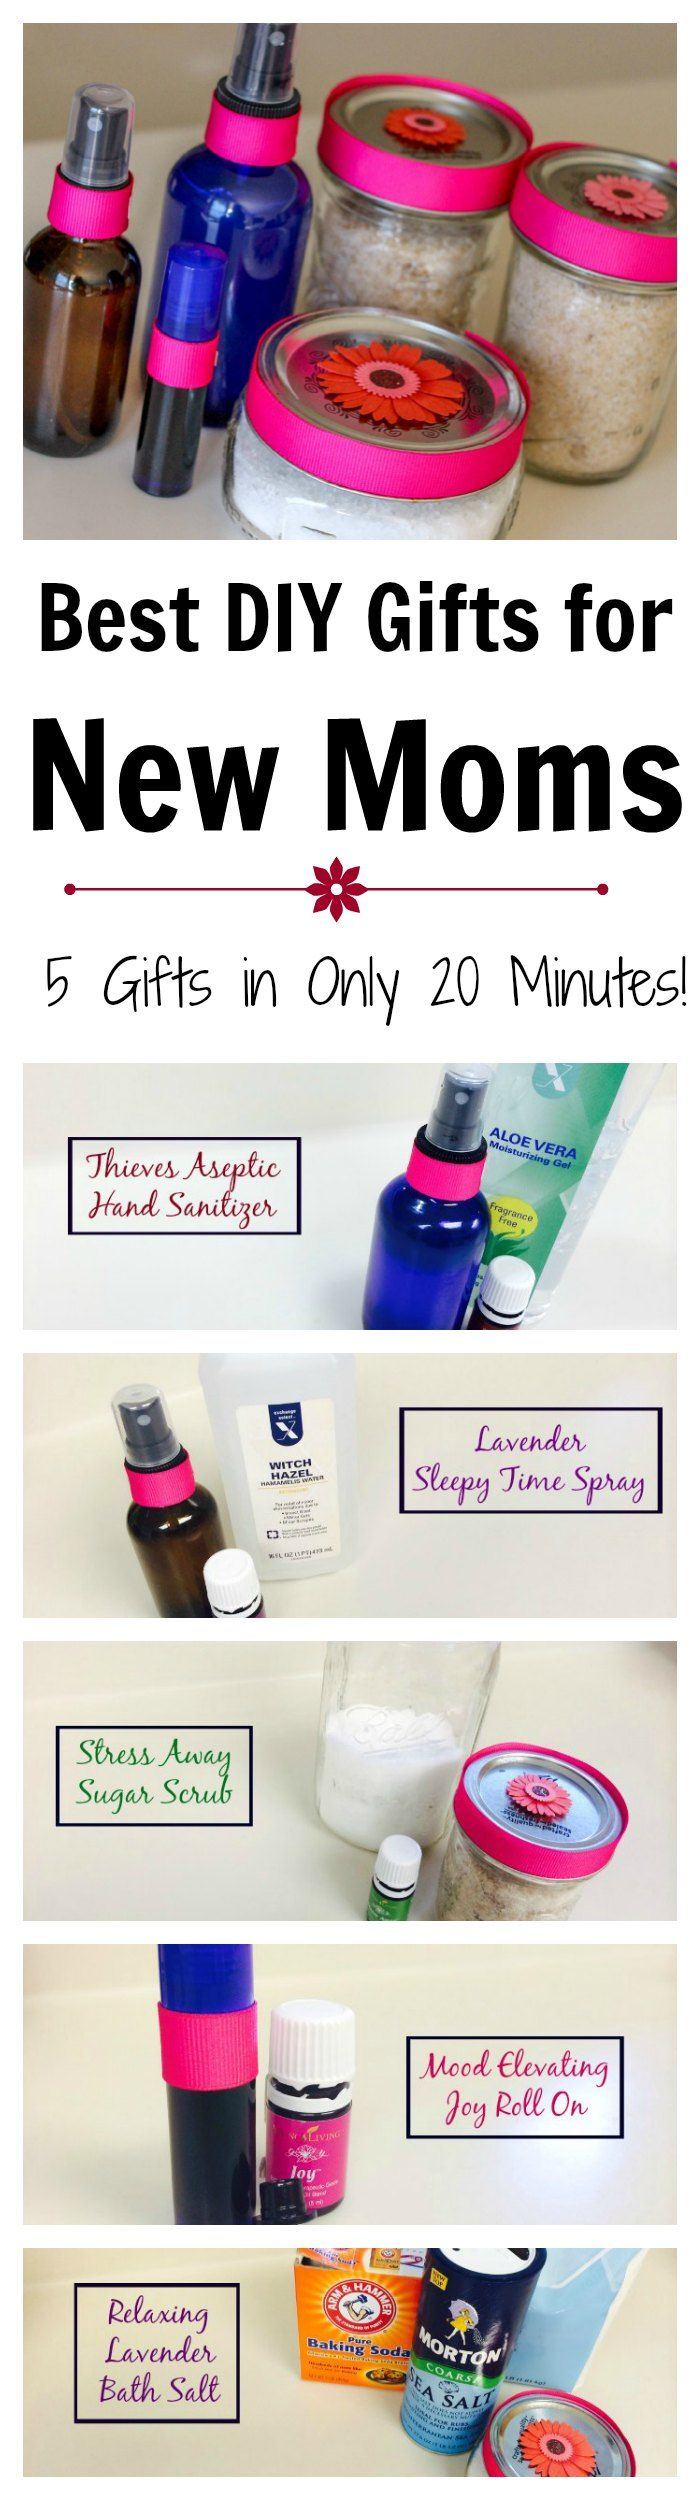 Awesome DIY Gifts that any new mom will absolutely love! Best part is you can make all 5 gifts in under 20 minutes!